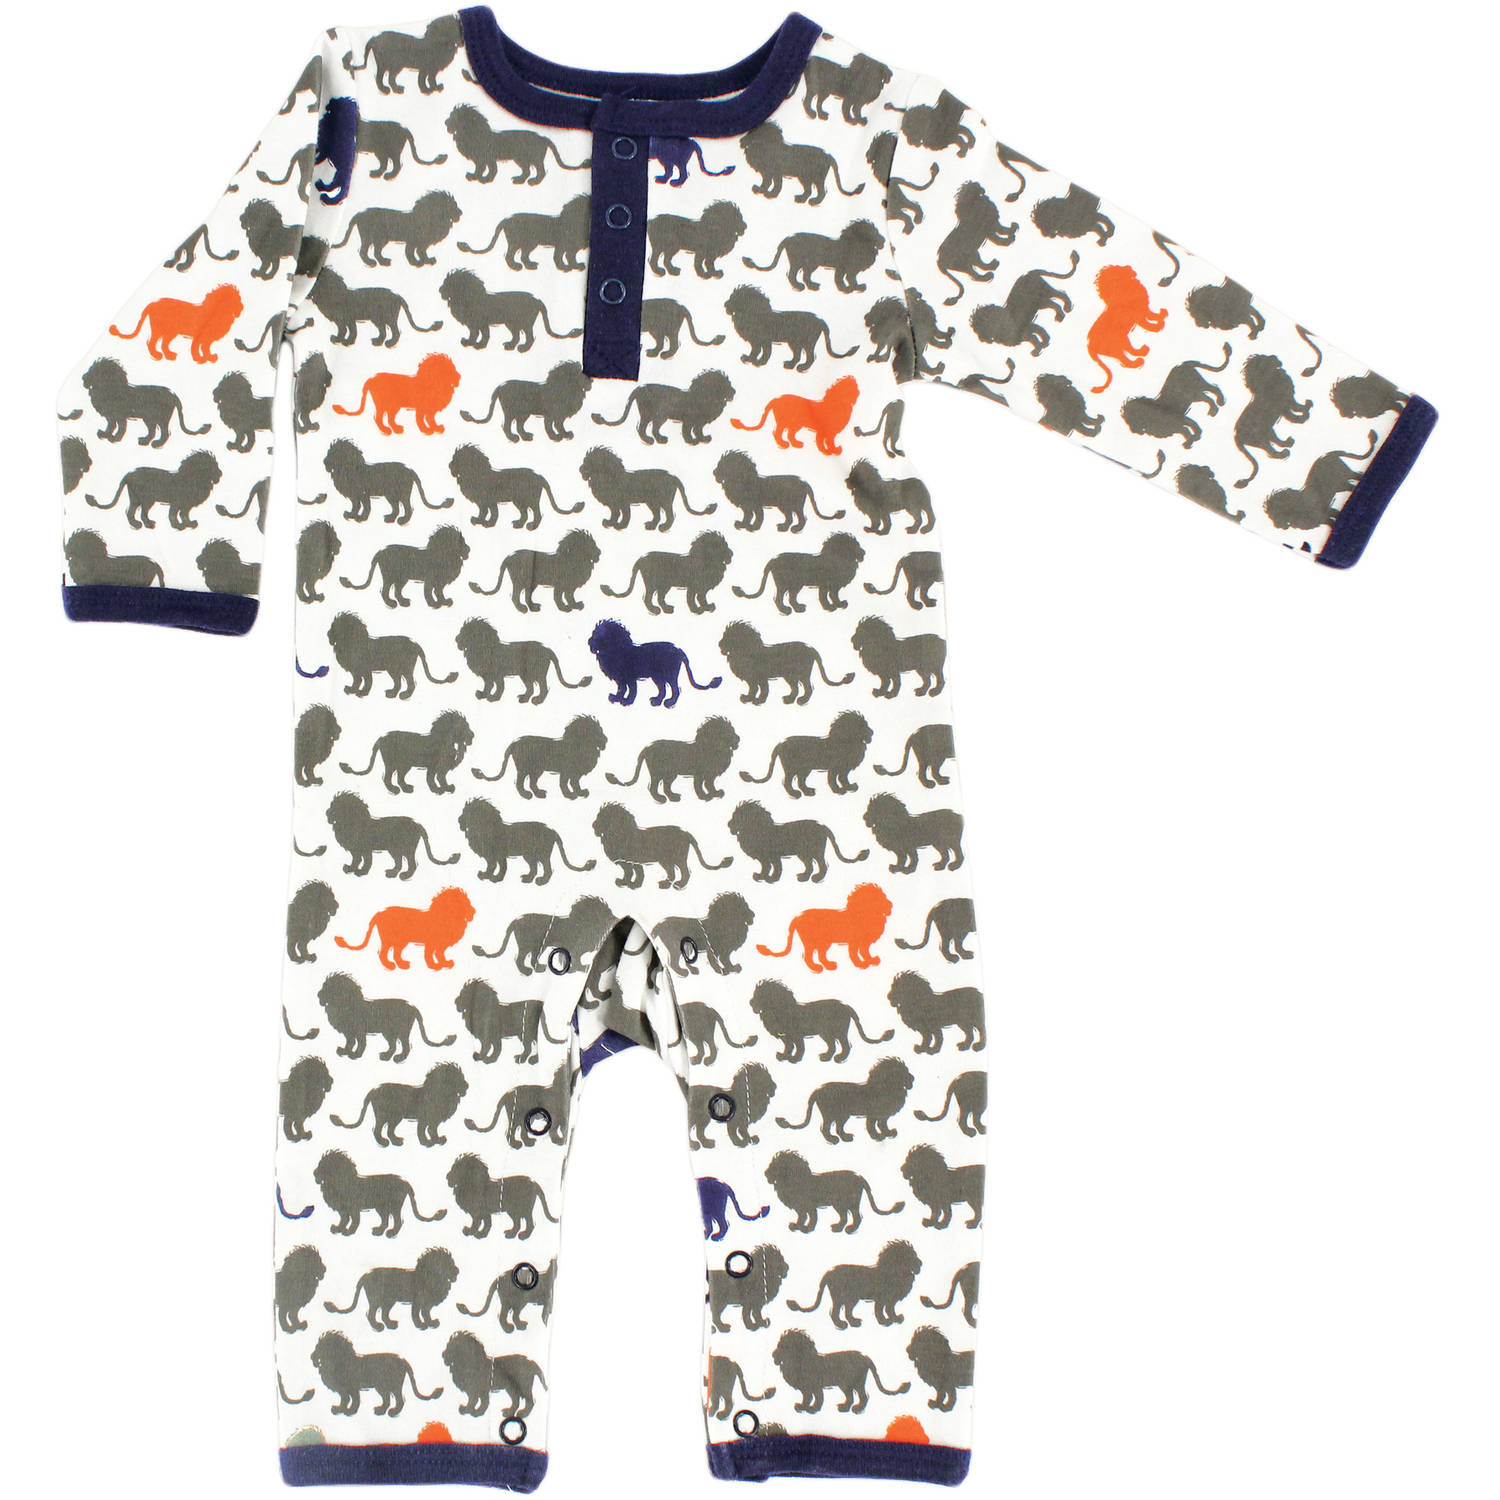 Yoga Sprout Newborn Baby Boys Union Suit - Lion